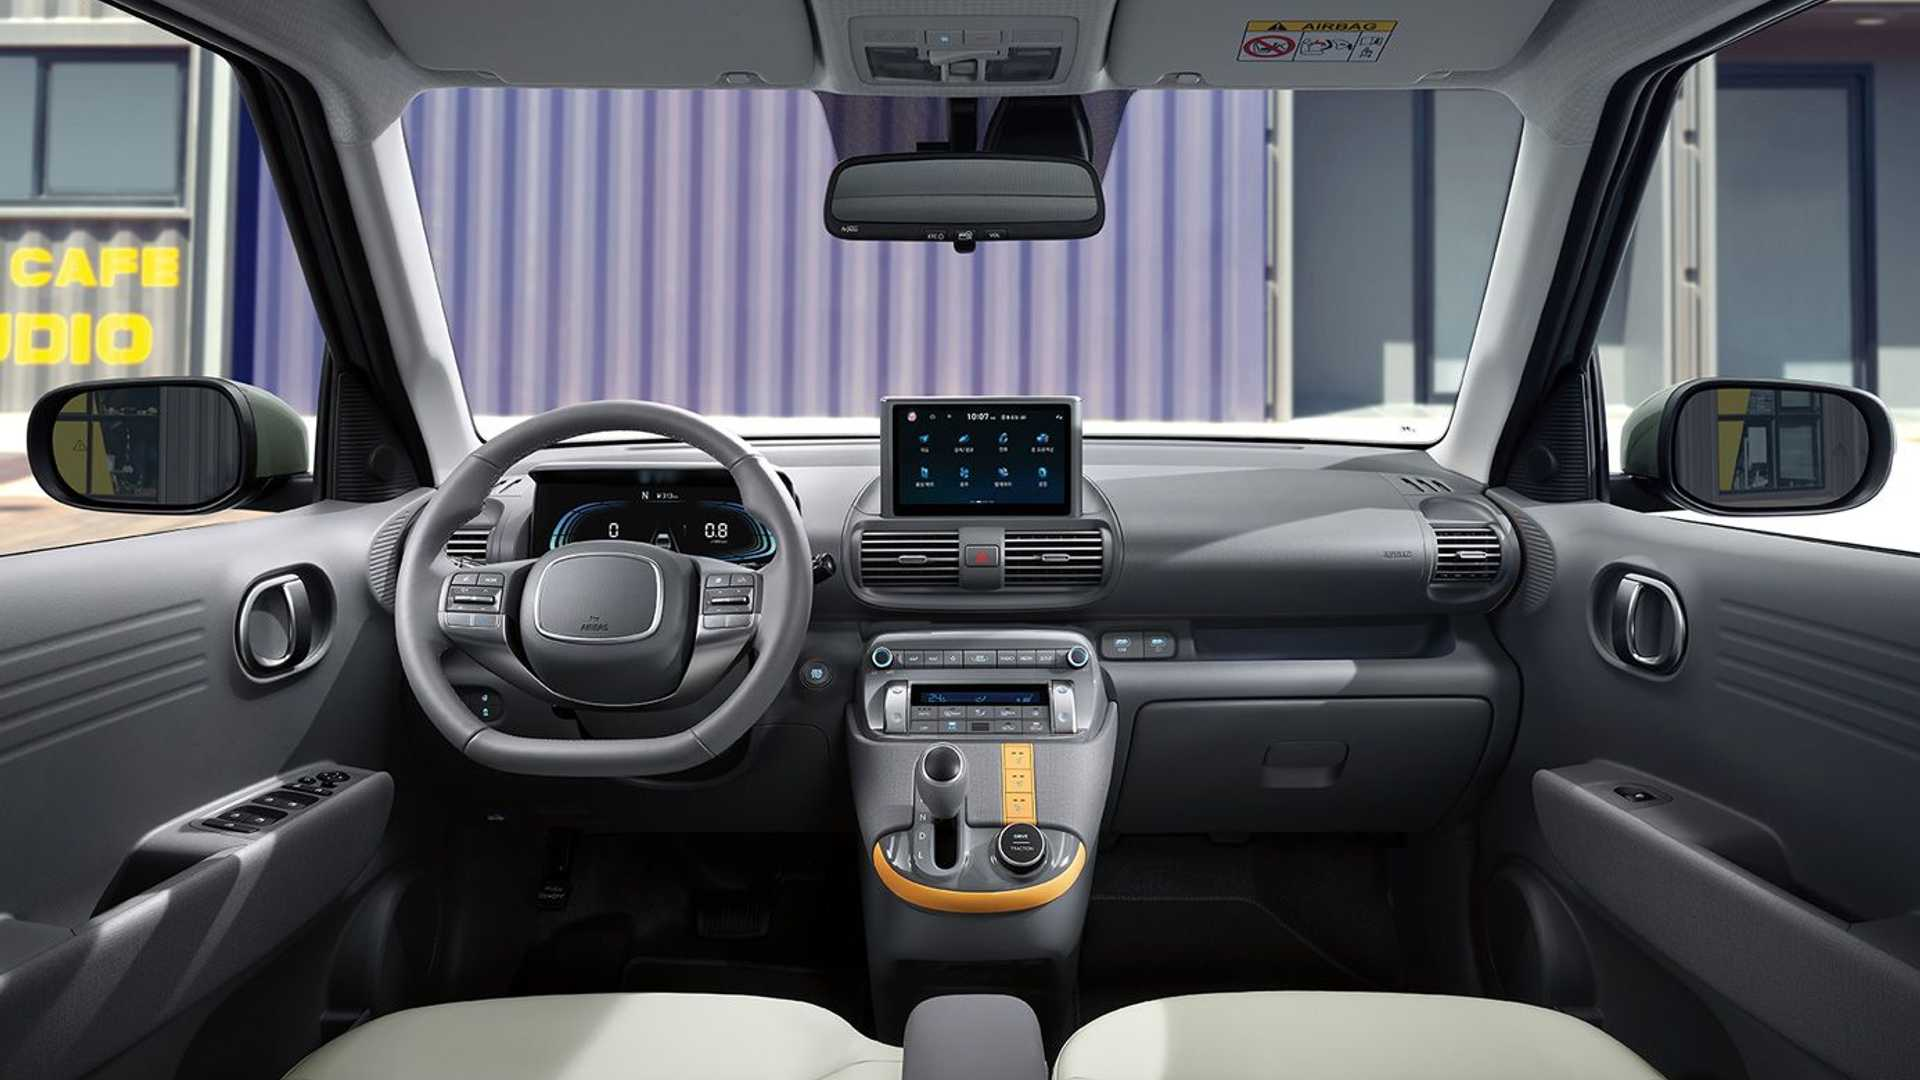 Hyundai introduced the subcompact C-SUV Casper a couple of weeks ago, but never showed its interior – until now.